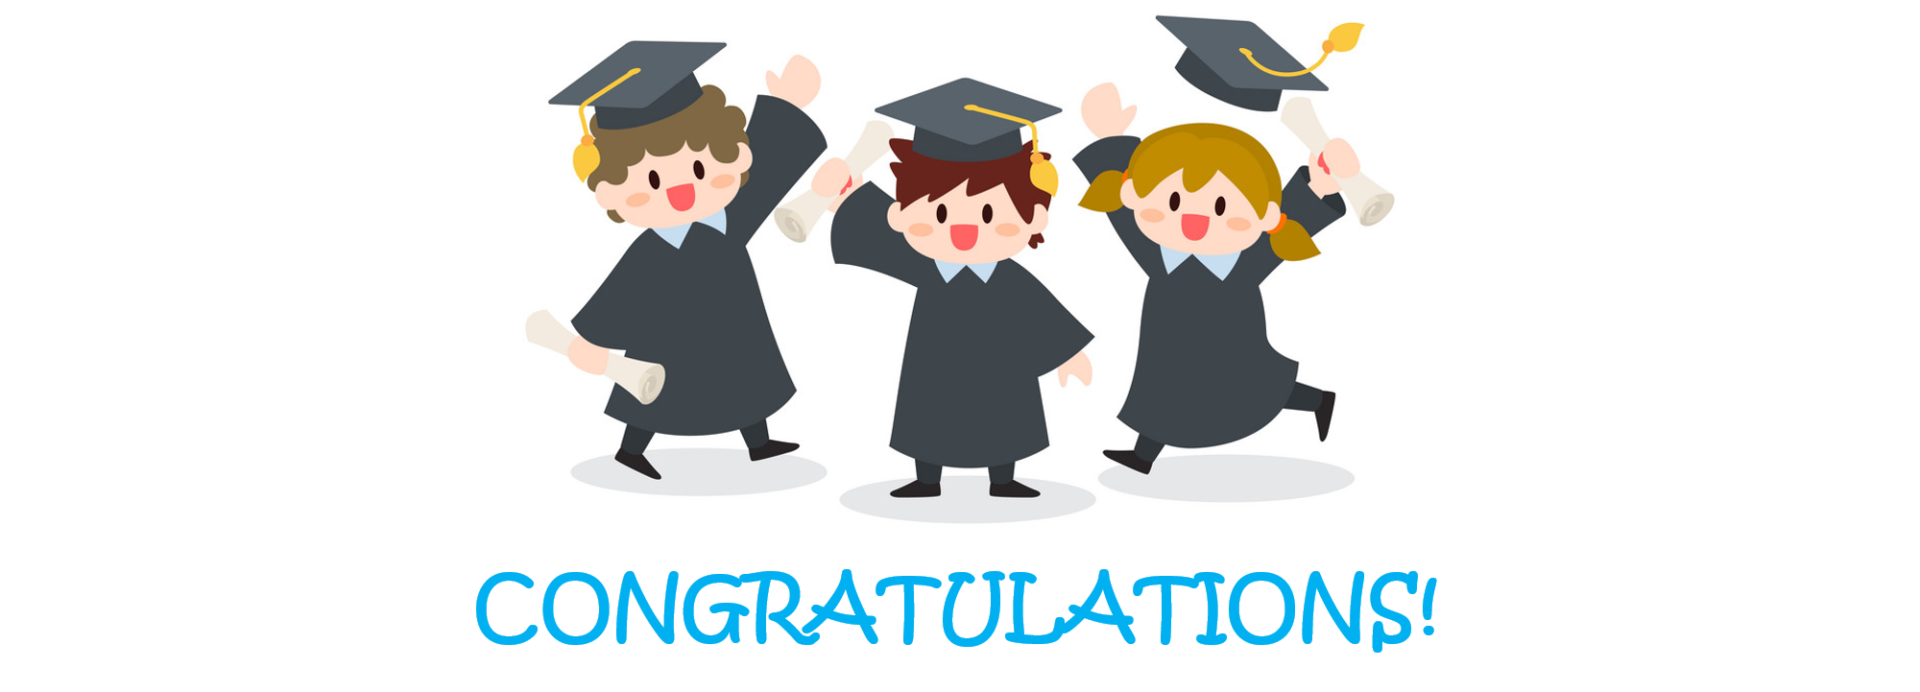 Best wishes for your next adventure! Click 'VIEW' to find graduation video.